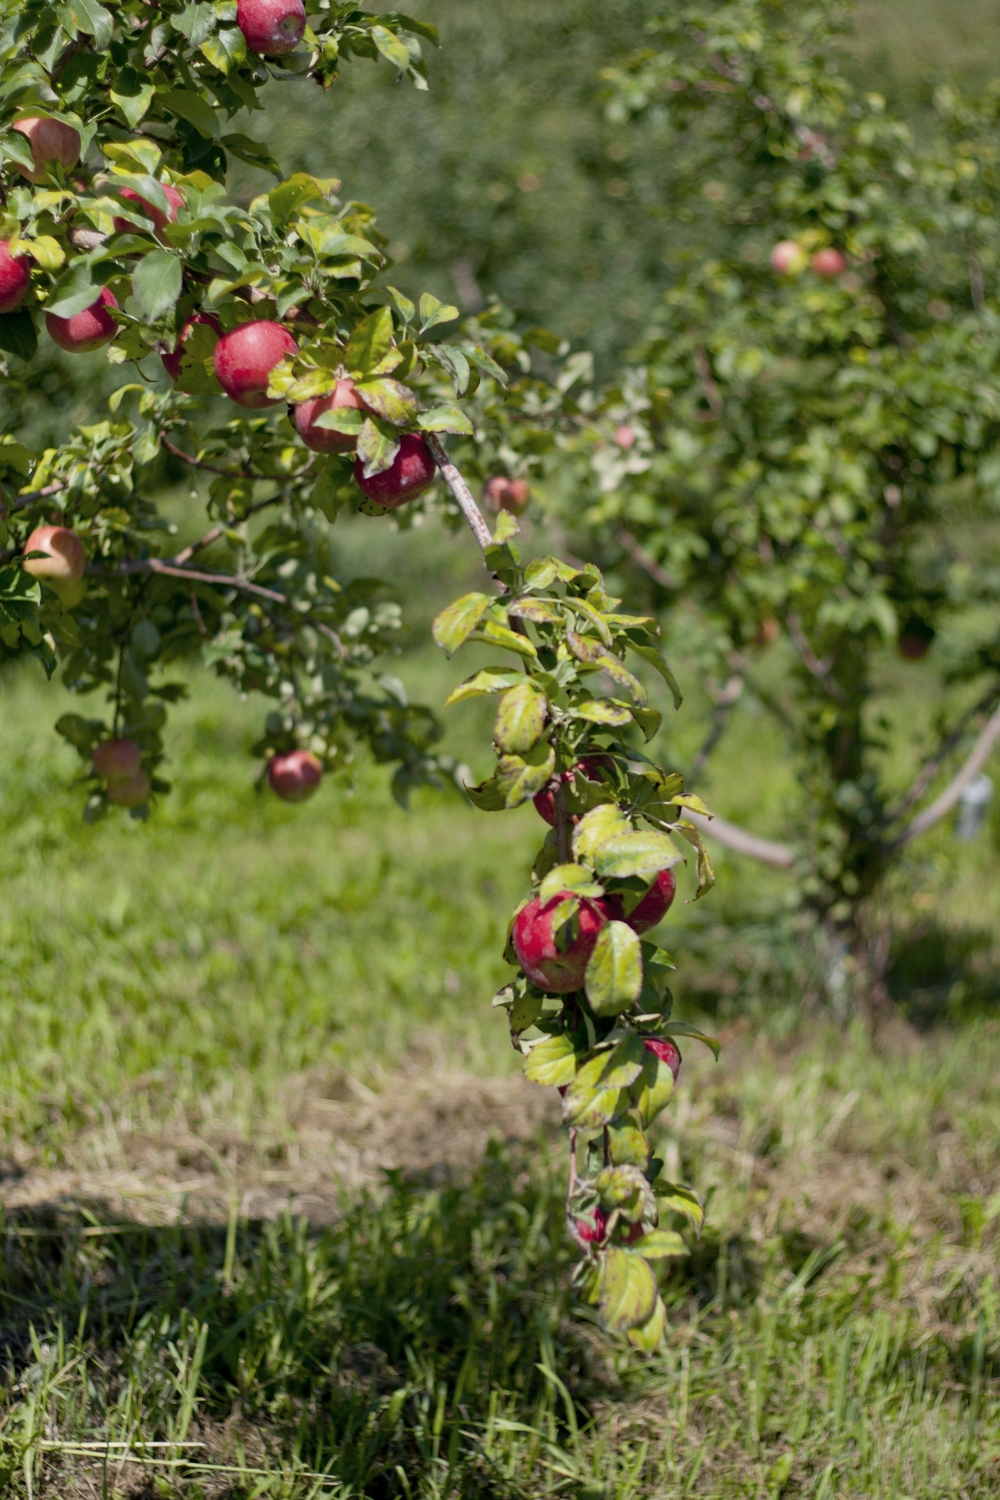 Ecker's Apple Farm